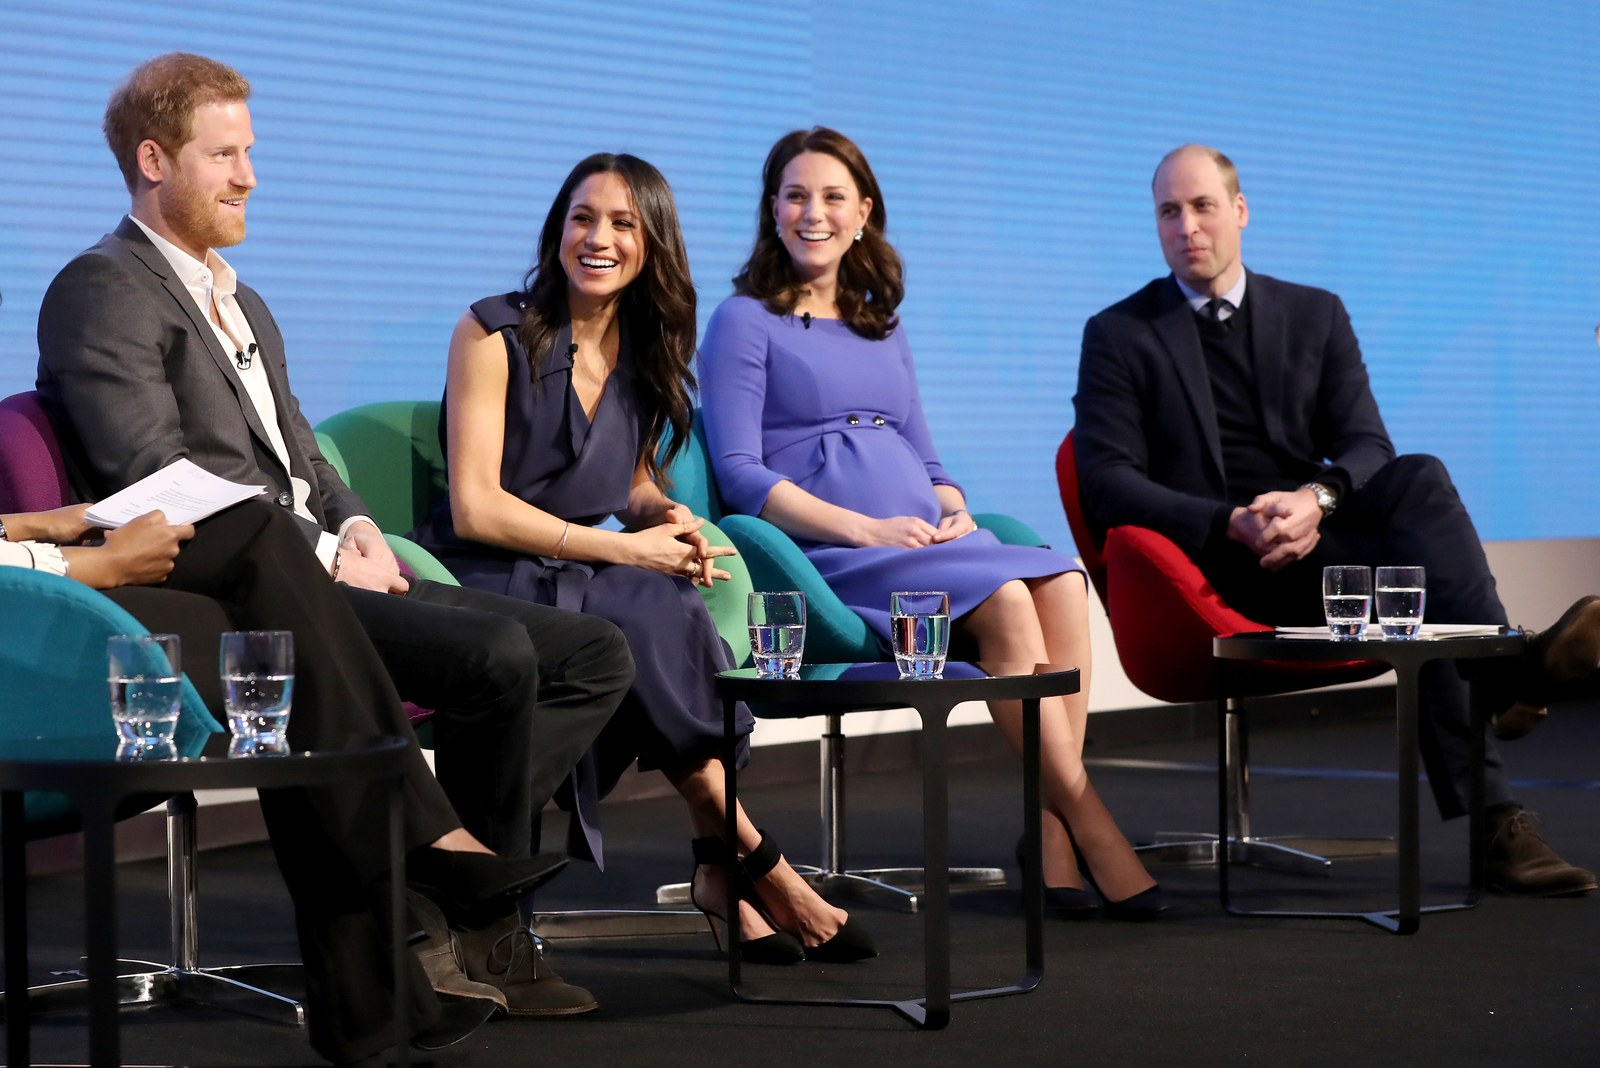 Prince Harry Meghan Markle Catherine and Prince William during a forum.